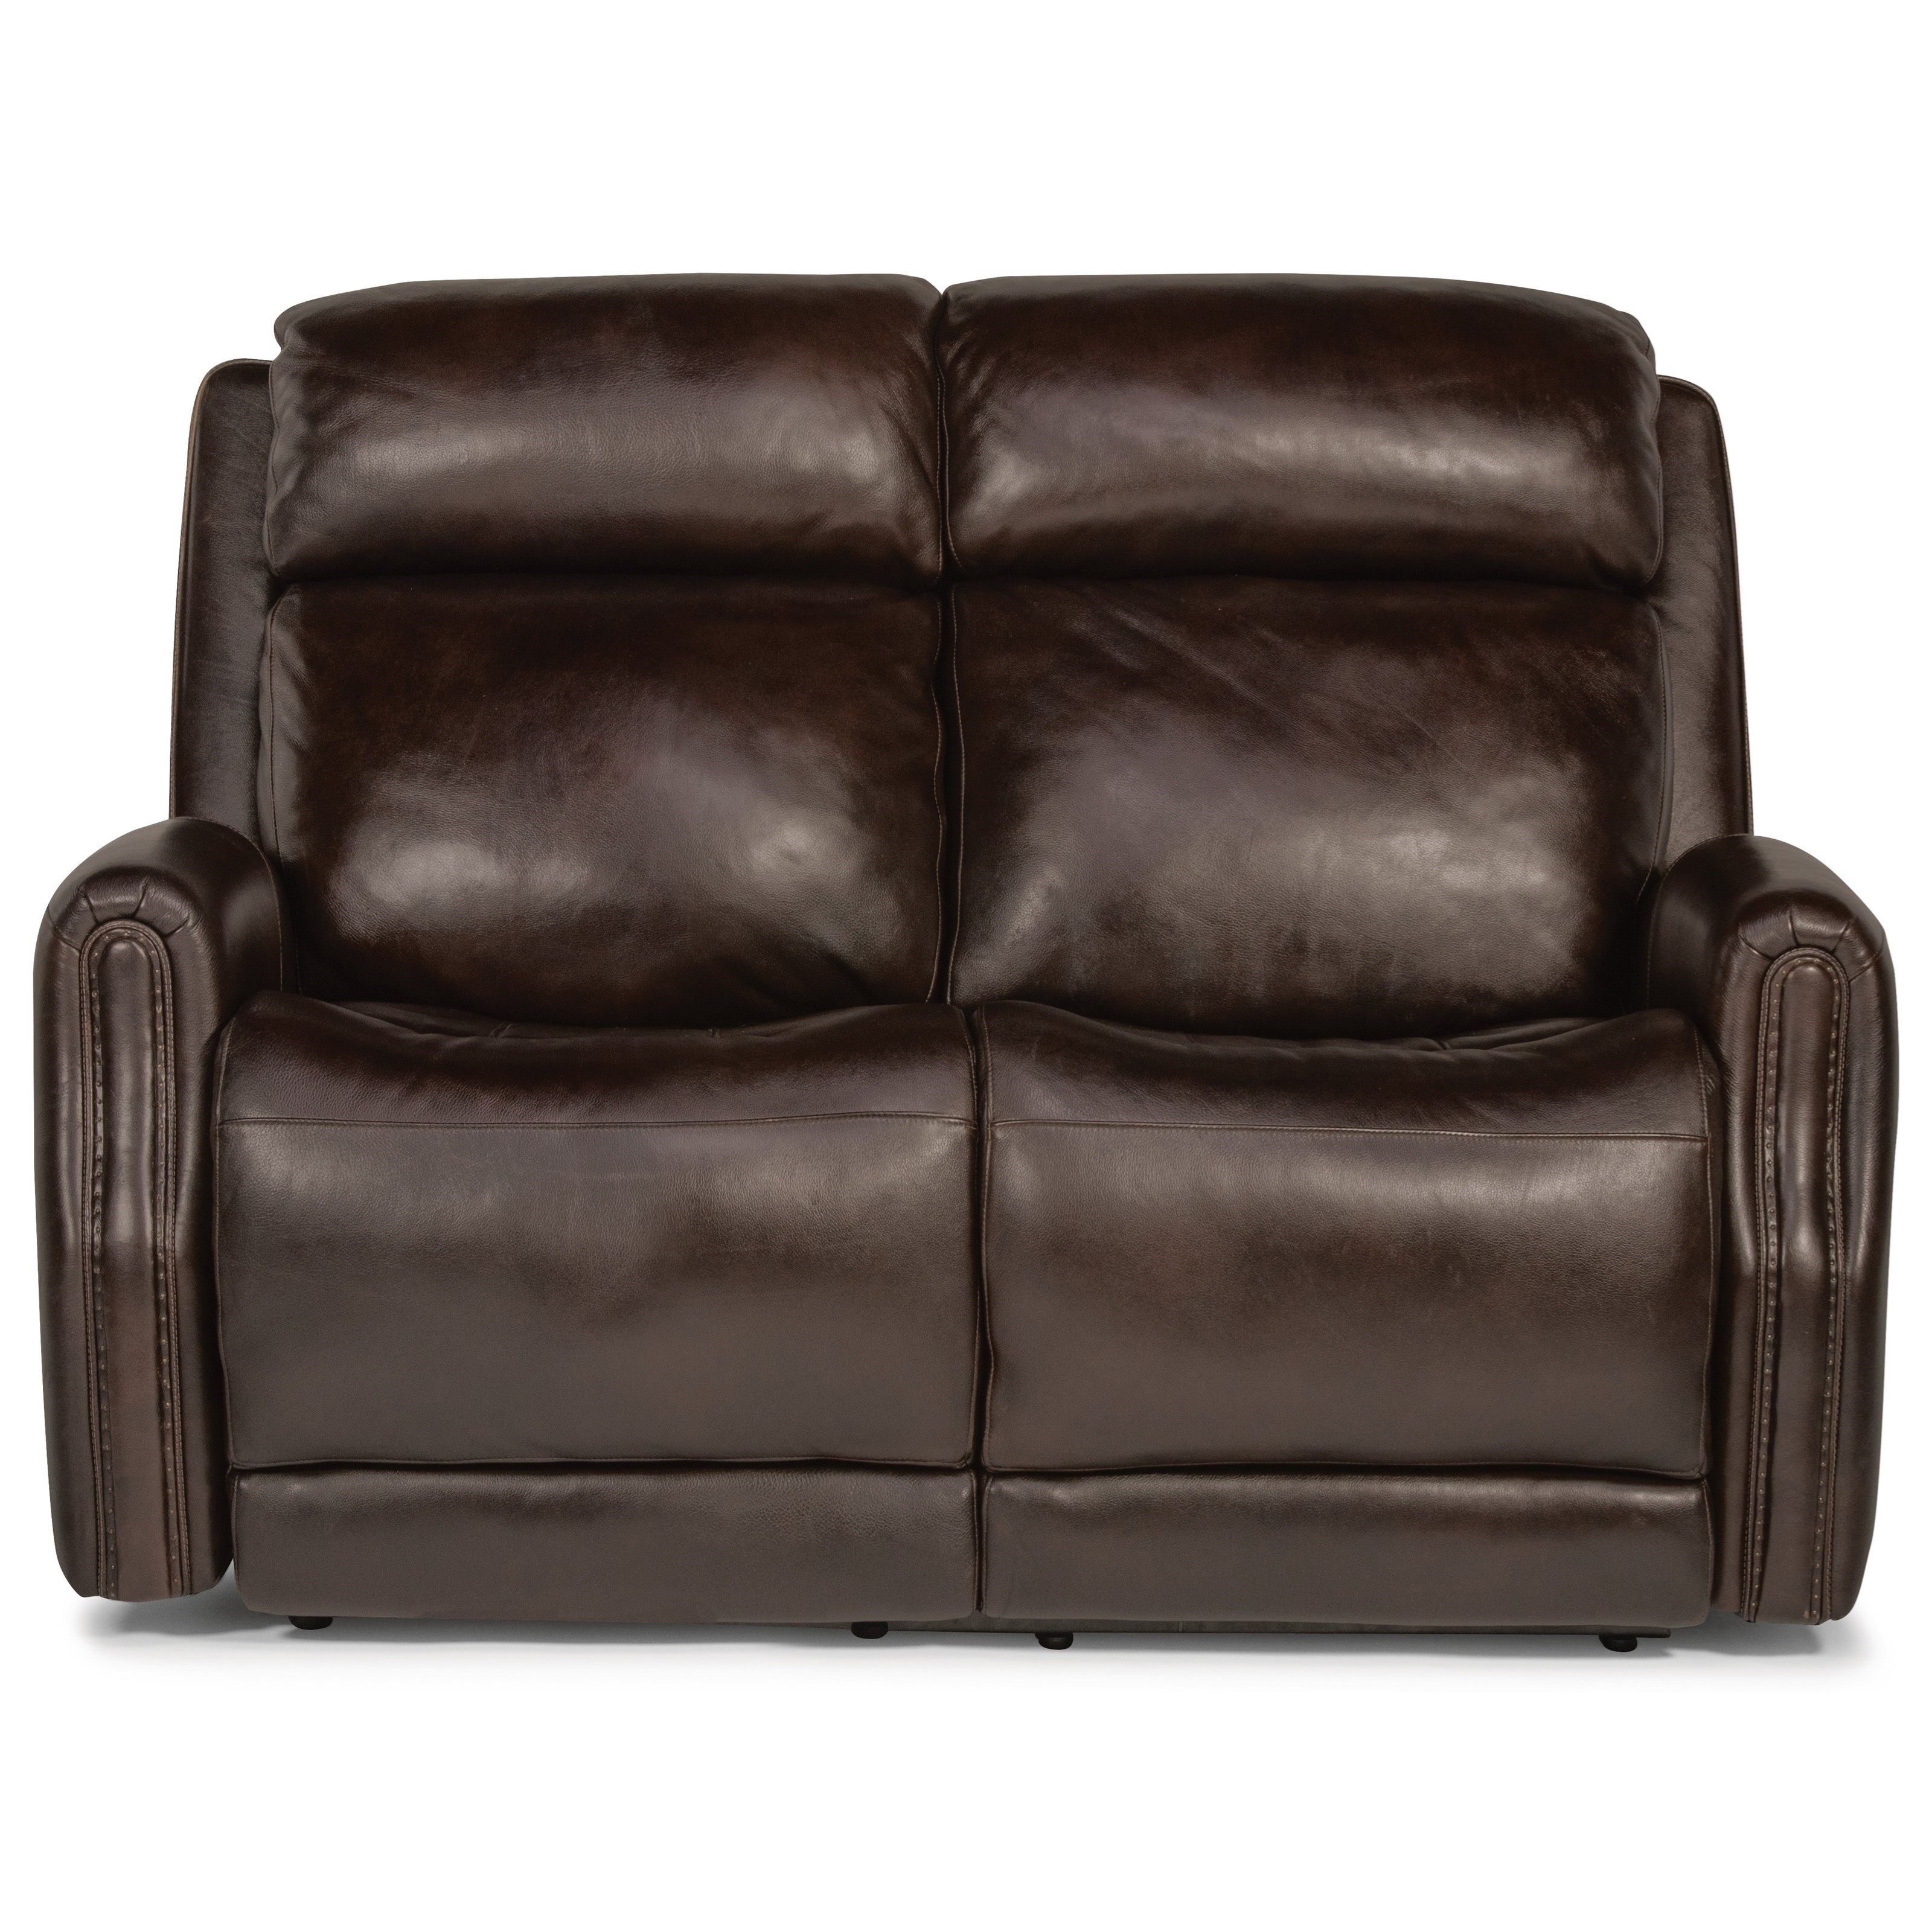 Latitudes - Stanley Power Reclining Leather Loveseat by Flexsteel at Crowley Furniture & Mattress